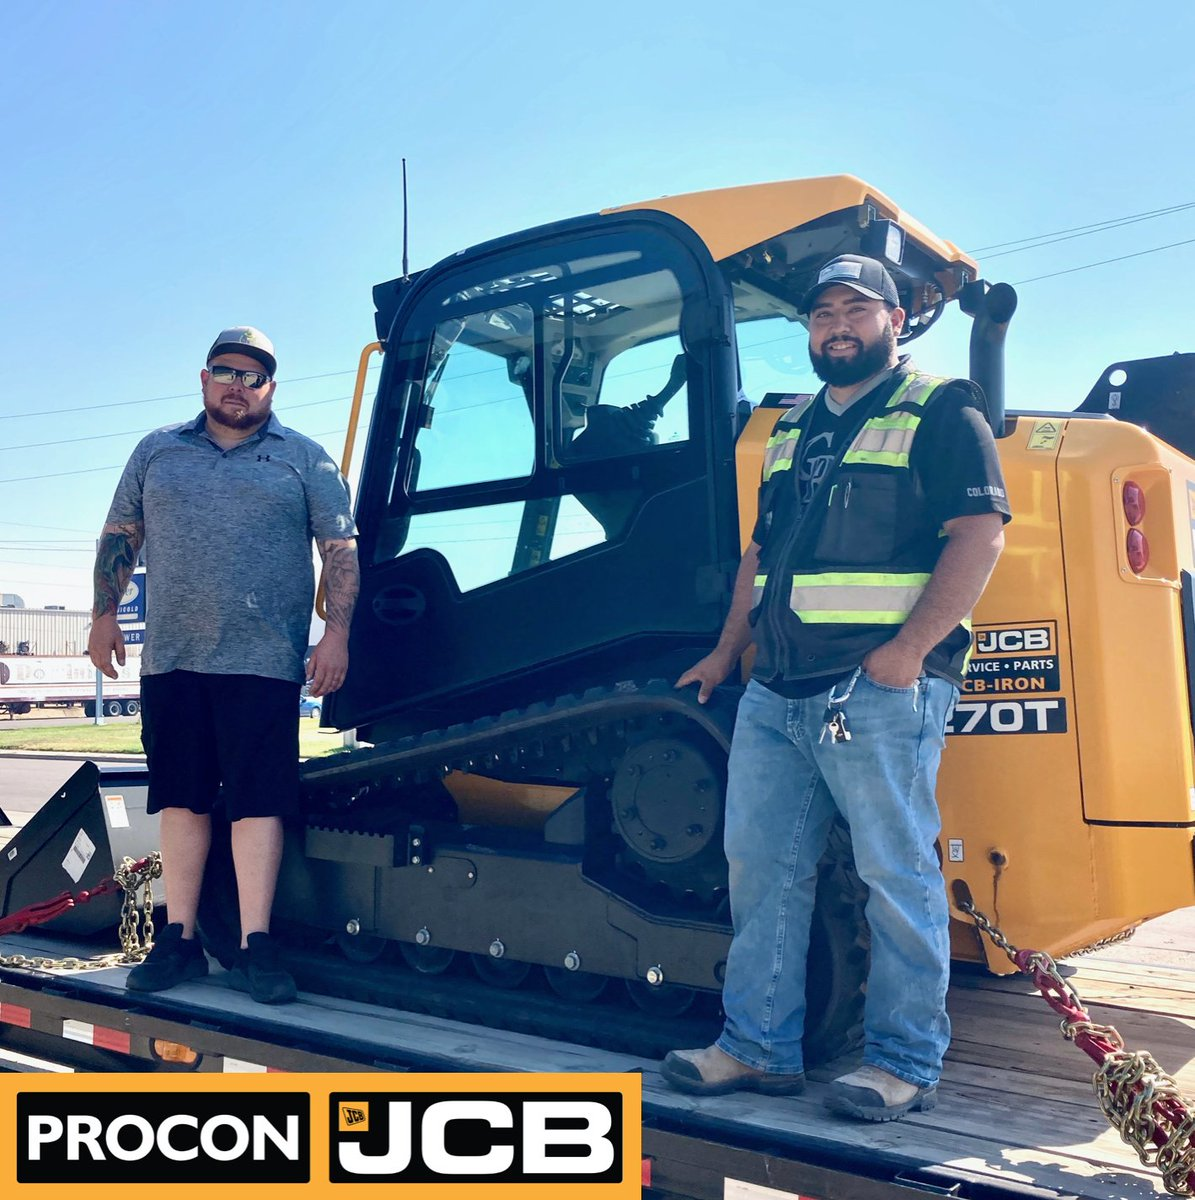 ProCon JCB Colorado just sold a 270T Skid Steer Loader -Congratulations to the new owners! 🎉  See more Skid Steer Loaders for sale on our website: https://t.co/cu6OMKNKIX  #ProConJCB #JCB #ForSale #Checkitout #AvailableNow #Congrats #NewSale #CustomerSatisfaction #Denver https://t.co/nFR4p4g71d